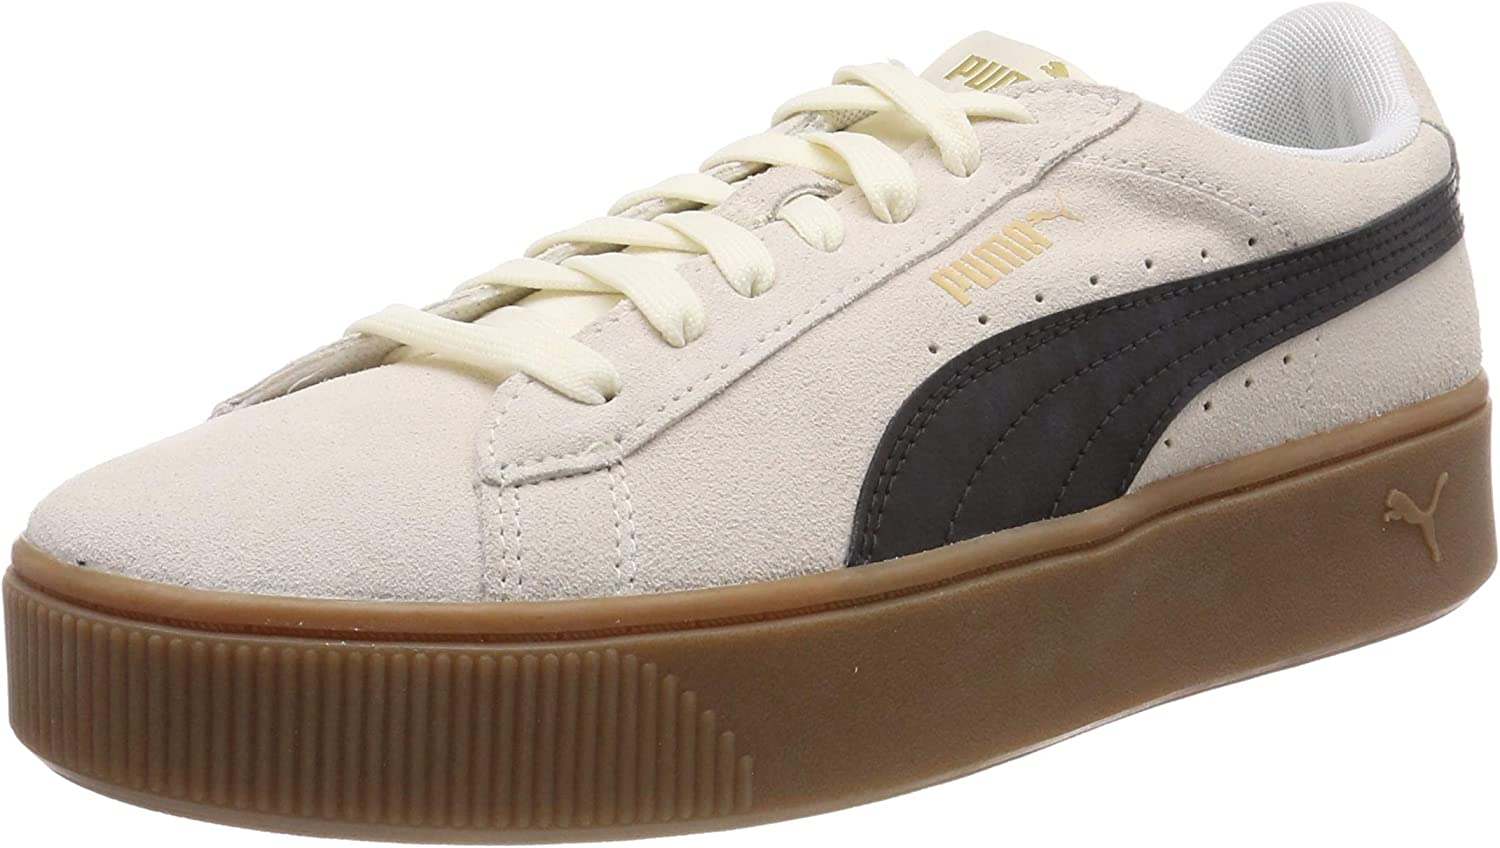 PUMA Discount mail order Women's Low-Top Sneakers OS Special price